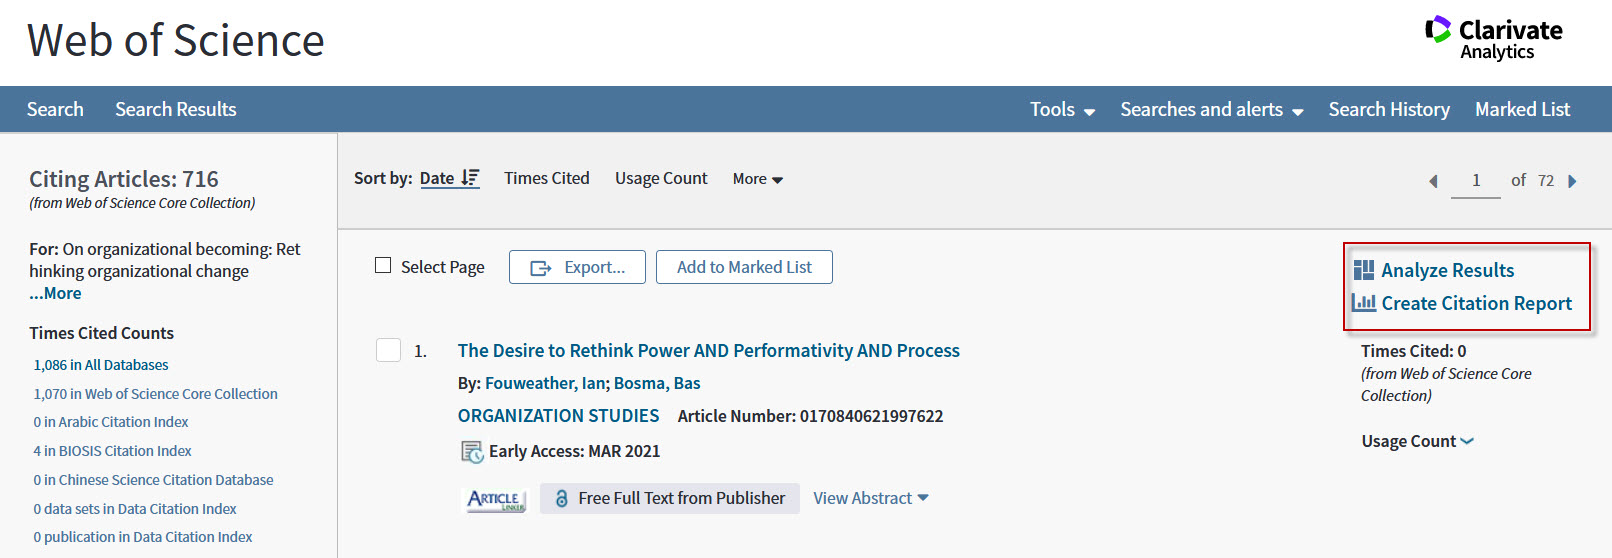 Screenshot showng the Analyze Results and Citation Report features in Web of Knowledge